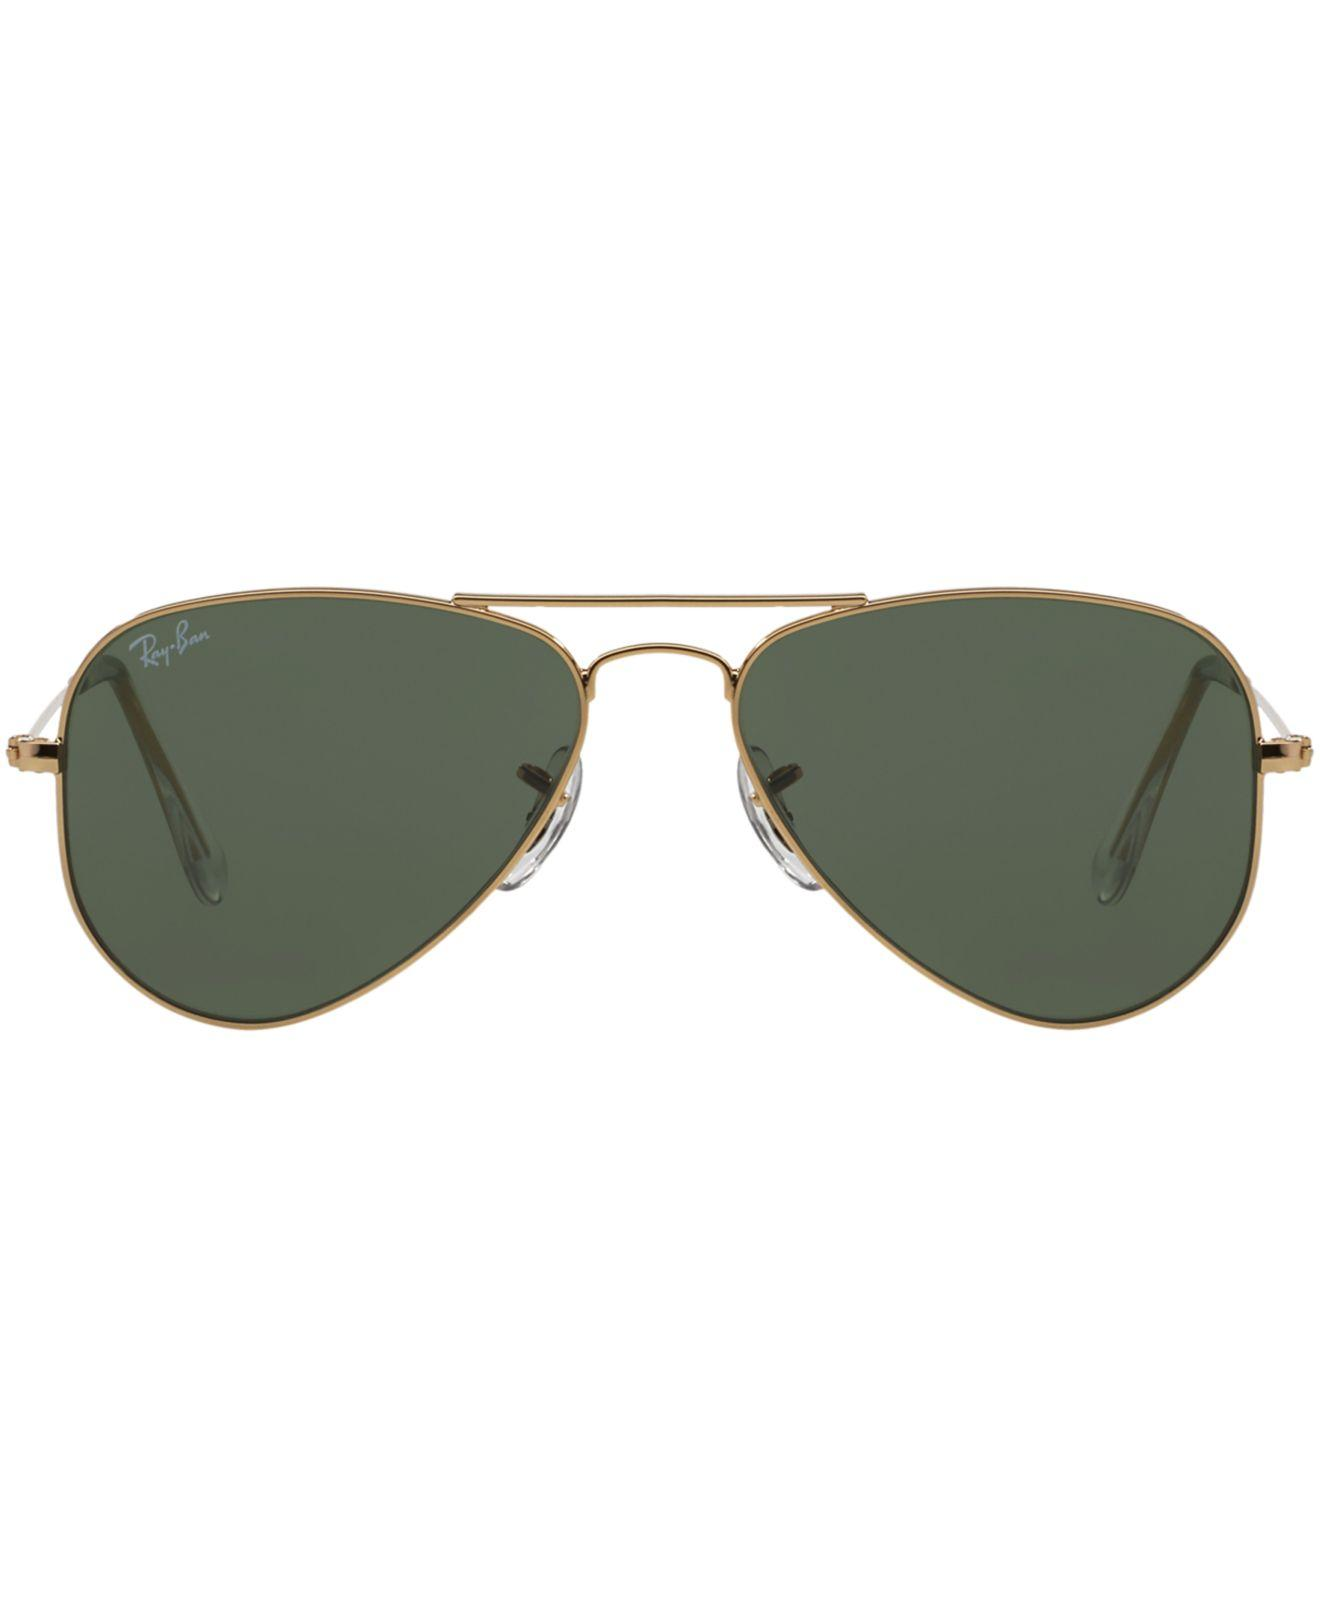 e25d9ede6c191 Lyst - Ray-Ban Rb3044 Small Aviator Sunglasses in Gray